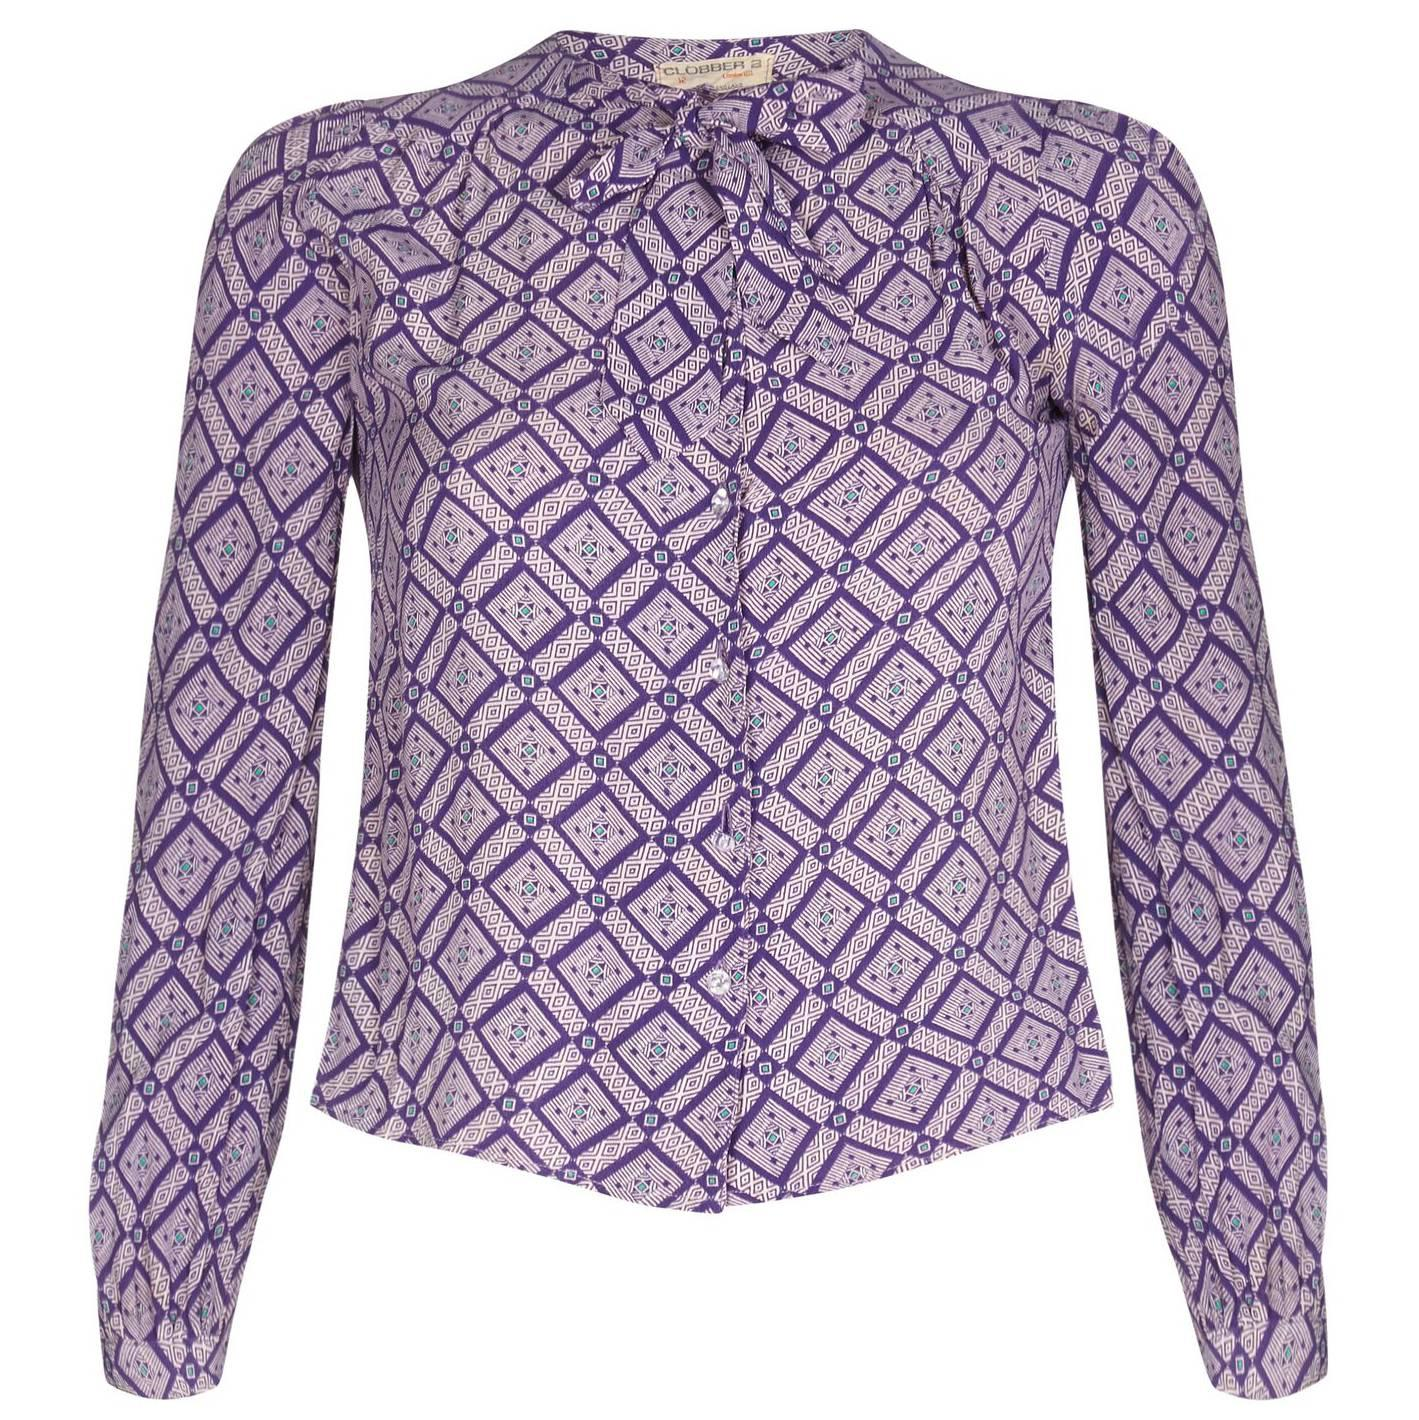 Jeff Banks 1970s Geometric Patterned Purple Blouse With Pussy Bow Collar